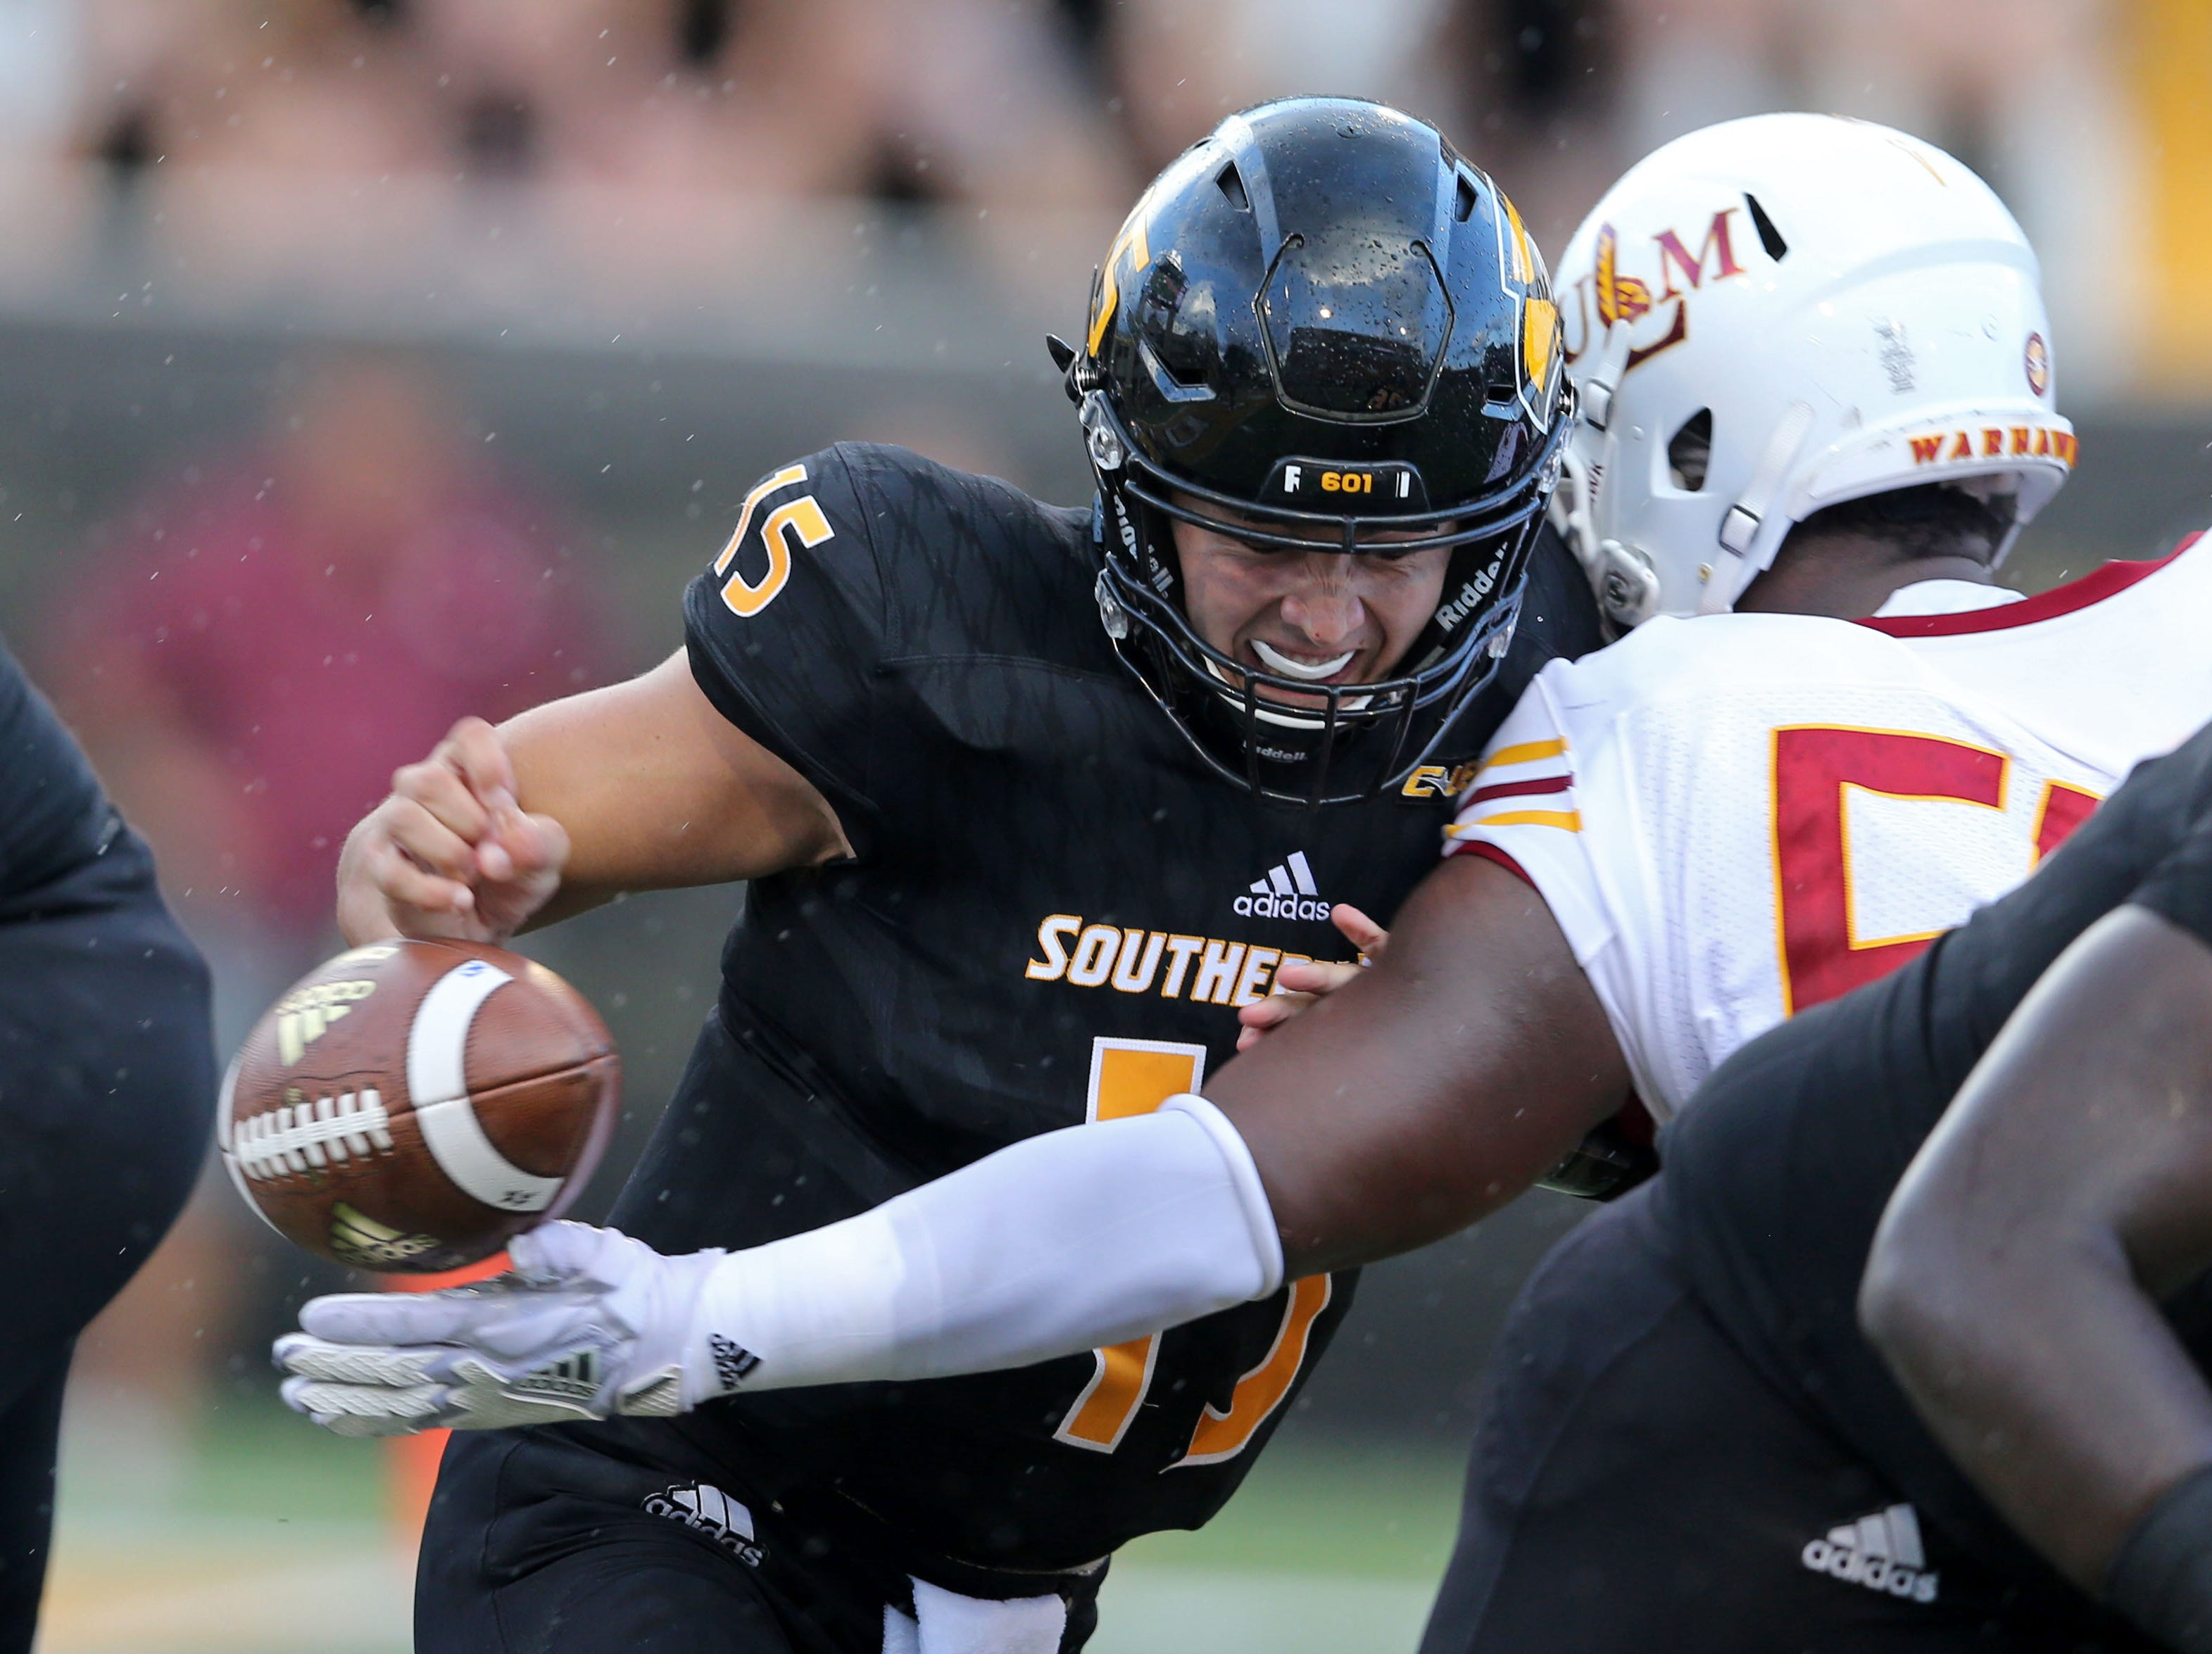 Southern Miss Golden Eagles quarterback Jack Abraham (15) fumbles after being hit by Louisiana Monroe Warhawks defensive lineman Donald Louis Jr. (58), right, at M. M. Roberts Stadium. Louisiana Monroe recovered the ball in the end zone for a touchdown.